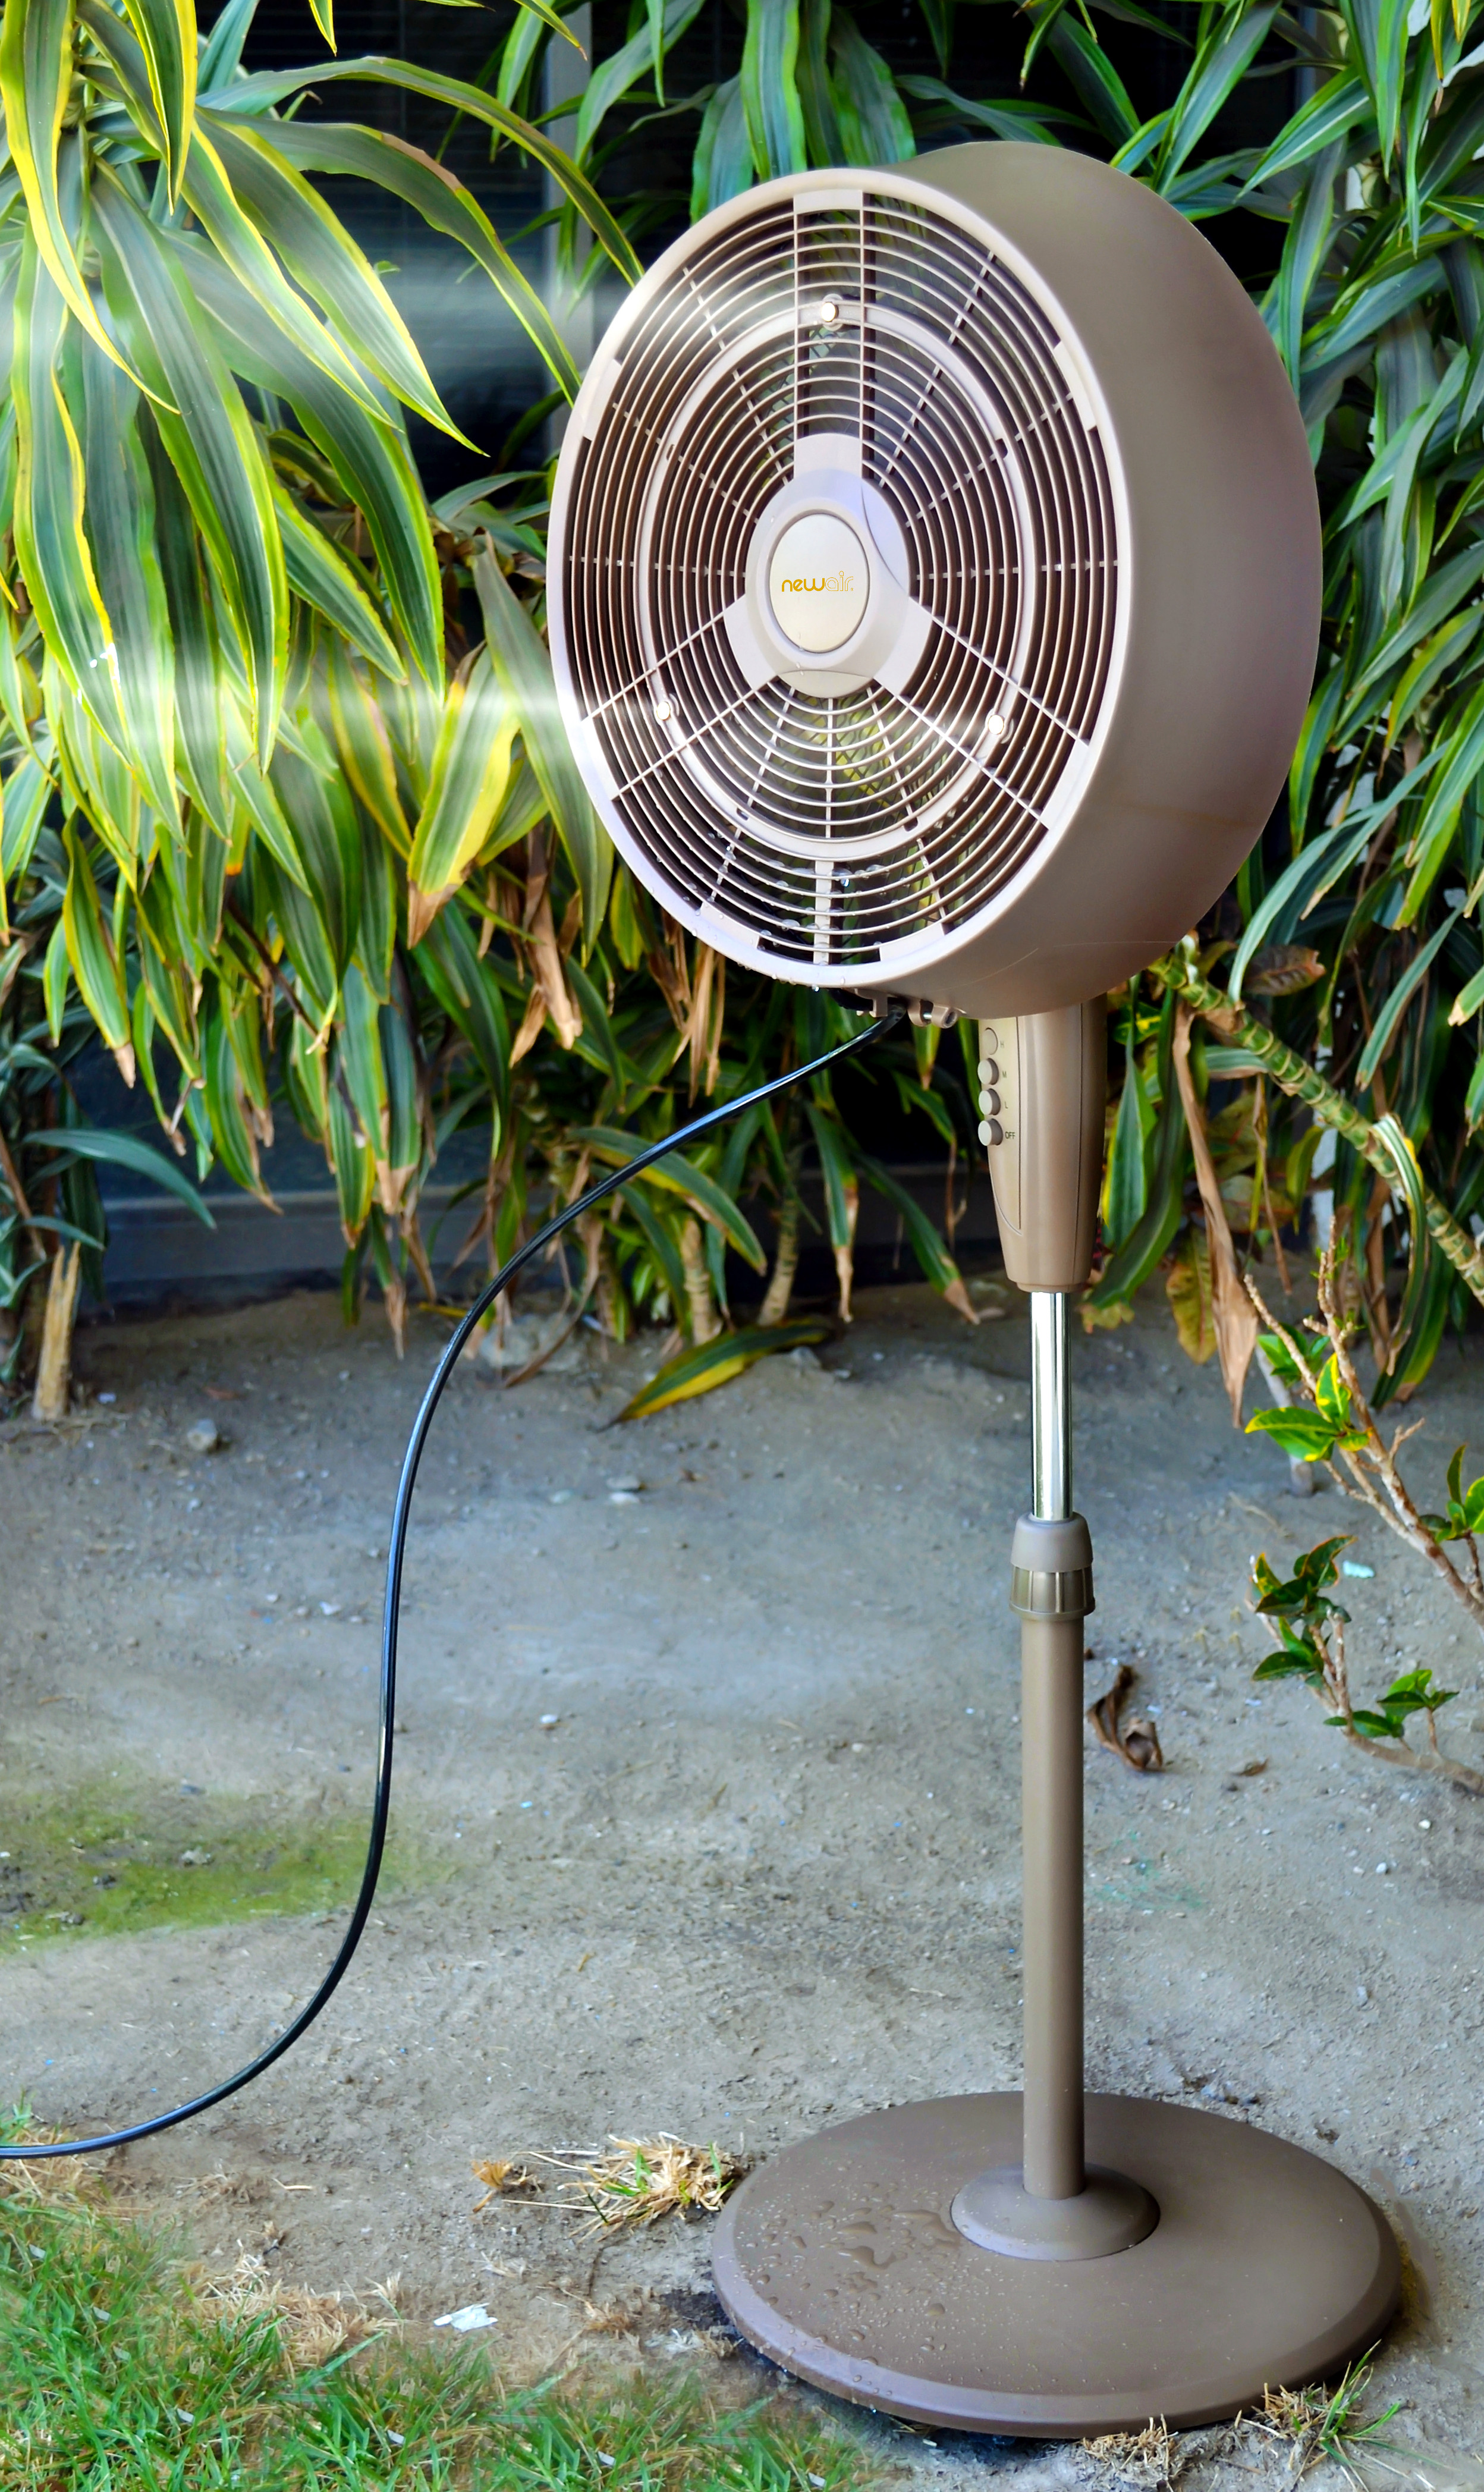 Best ideas about Outdoor Patio Fans . Save or Pin Newair AF 520 18 034 Outdoor 3 Speed Nozzle Portable Patio Now.